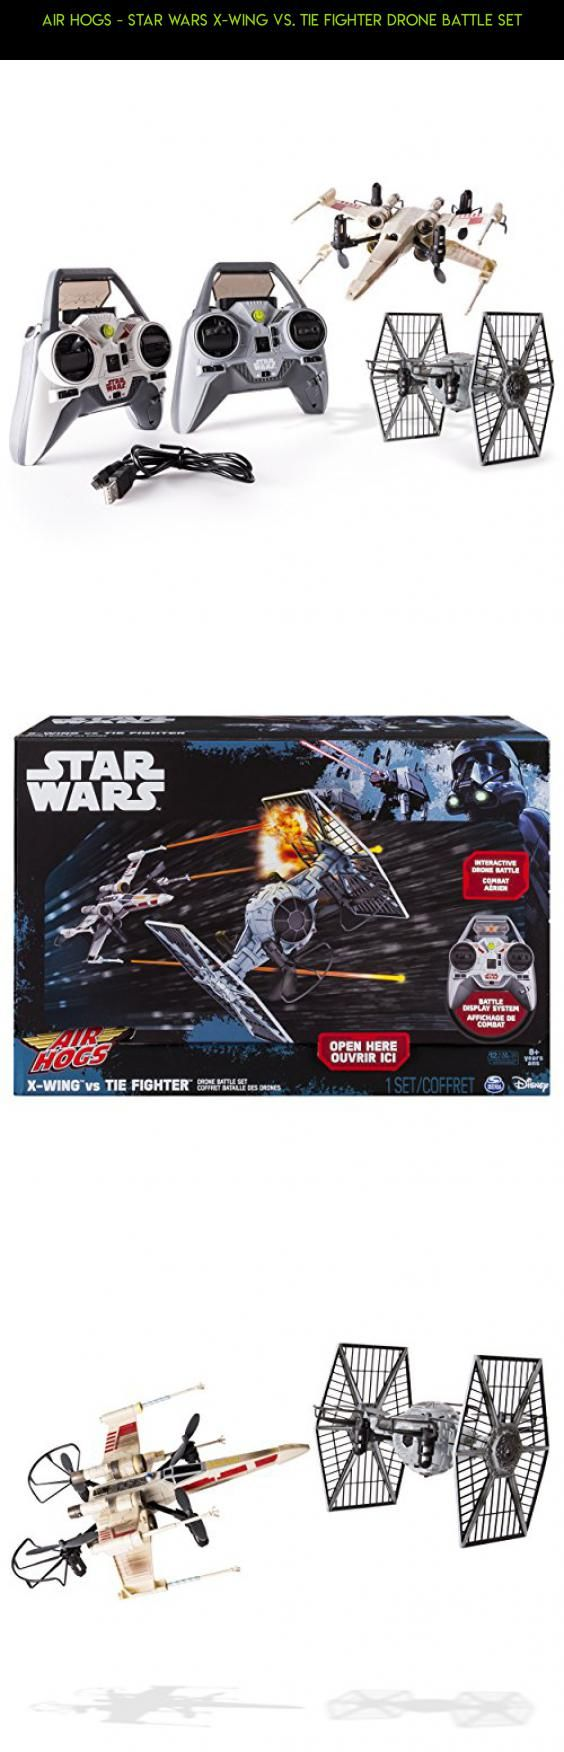 Air Hogs - Star Wars X-wing vs. TIE Fighter Drone Battle Set #air #drone #racing #camera #parts #shopping #technology #hogs #fpv #200 #plans #gadgets #products #tech #kit